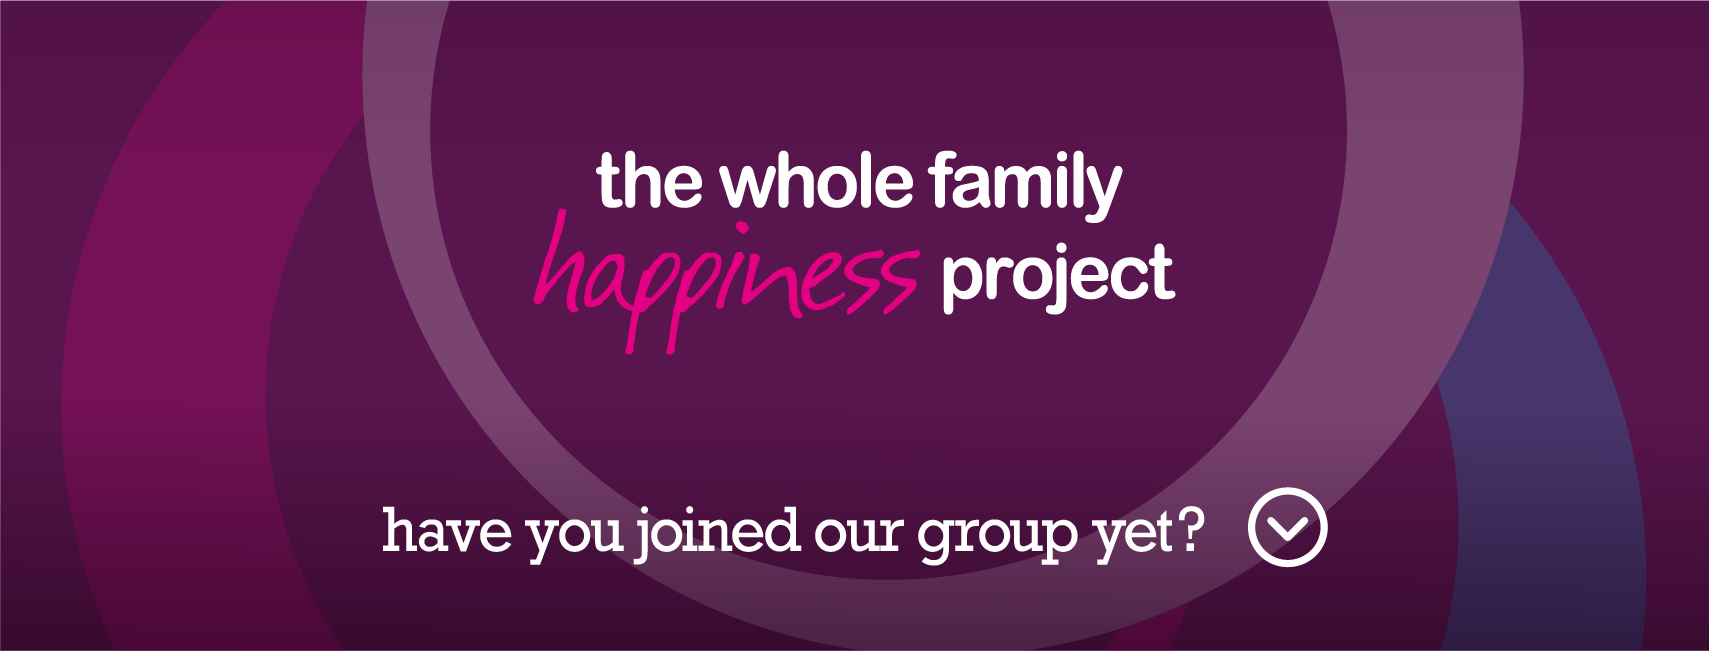 The Whole Family Happiness Project